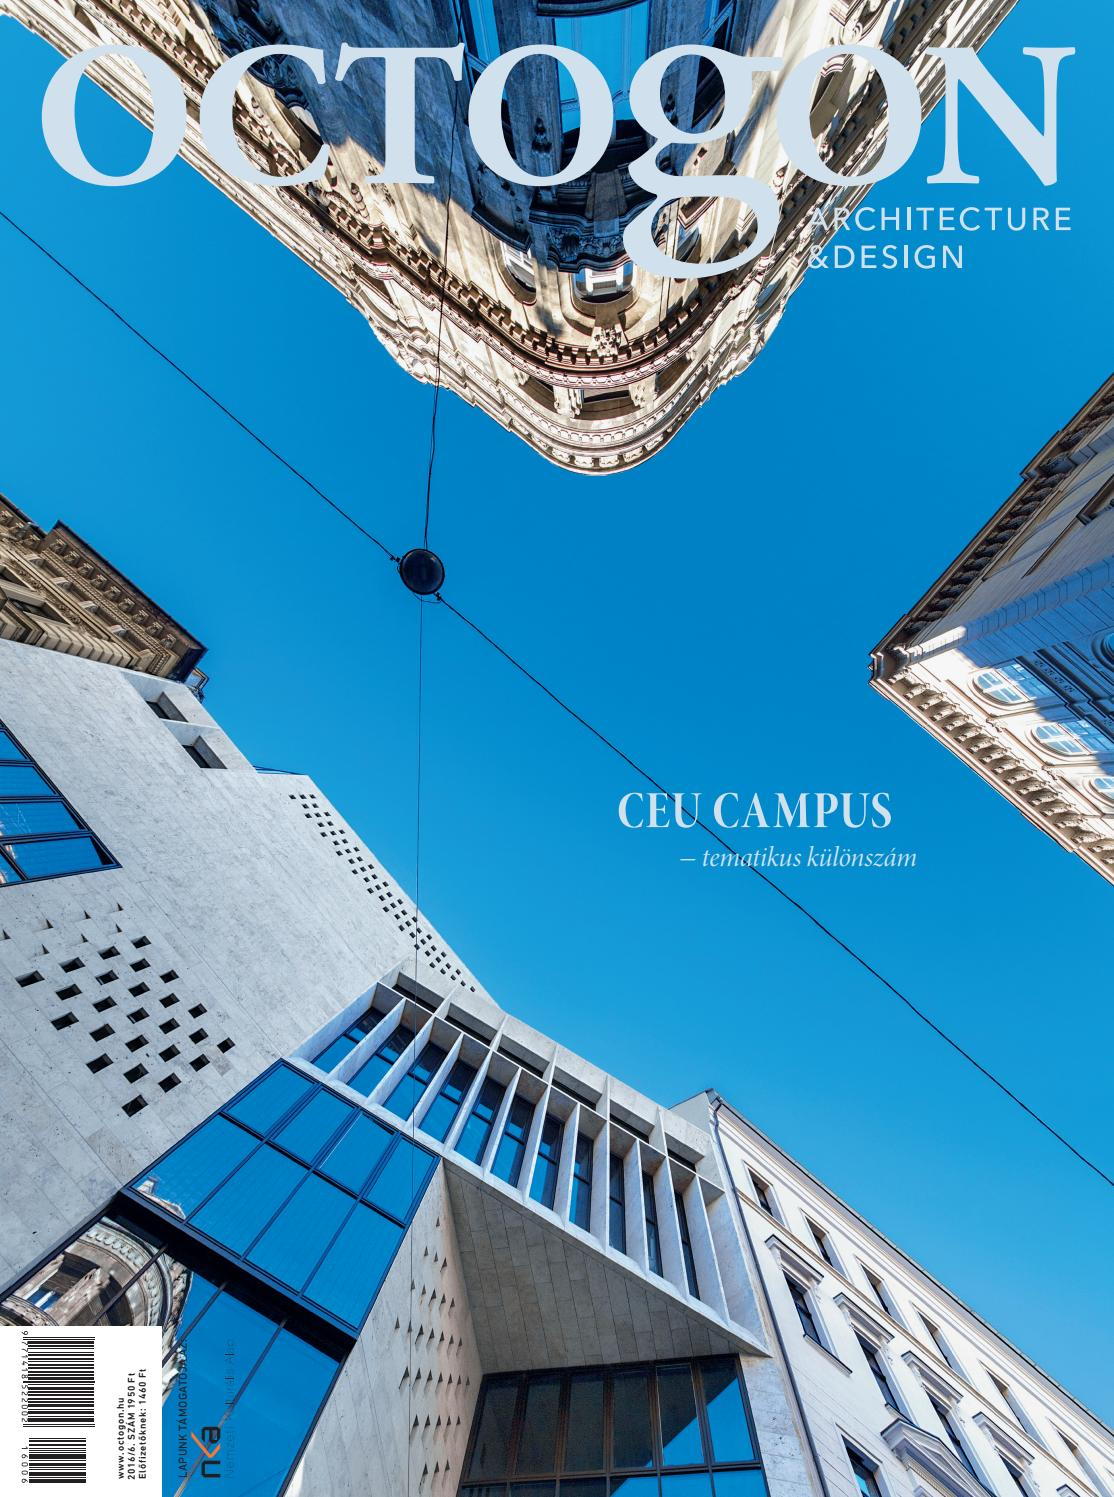 Igy latnak minket az amerikaiak 784 - Octogon Magazine 2016 6 Ceu Campus Special Edition By Octogon Architecture Design Magazine Issuu